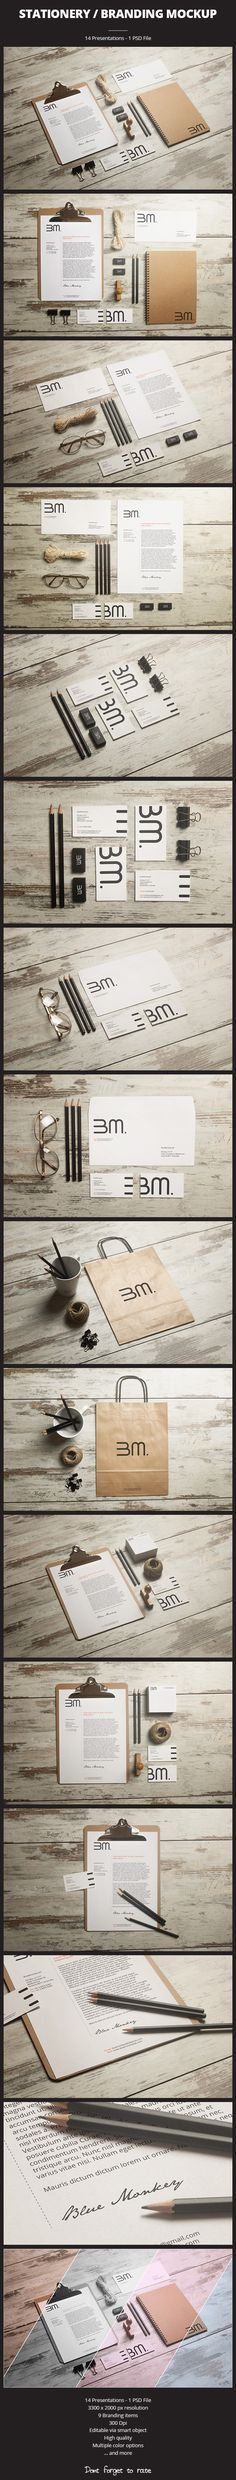 Stationery / Branding Mockup by BlueMonkeyLab , via Behance